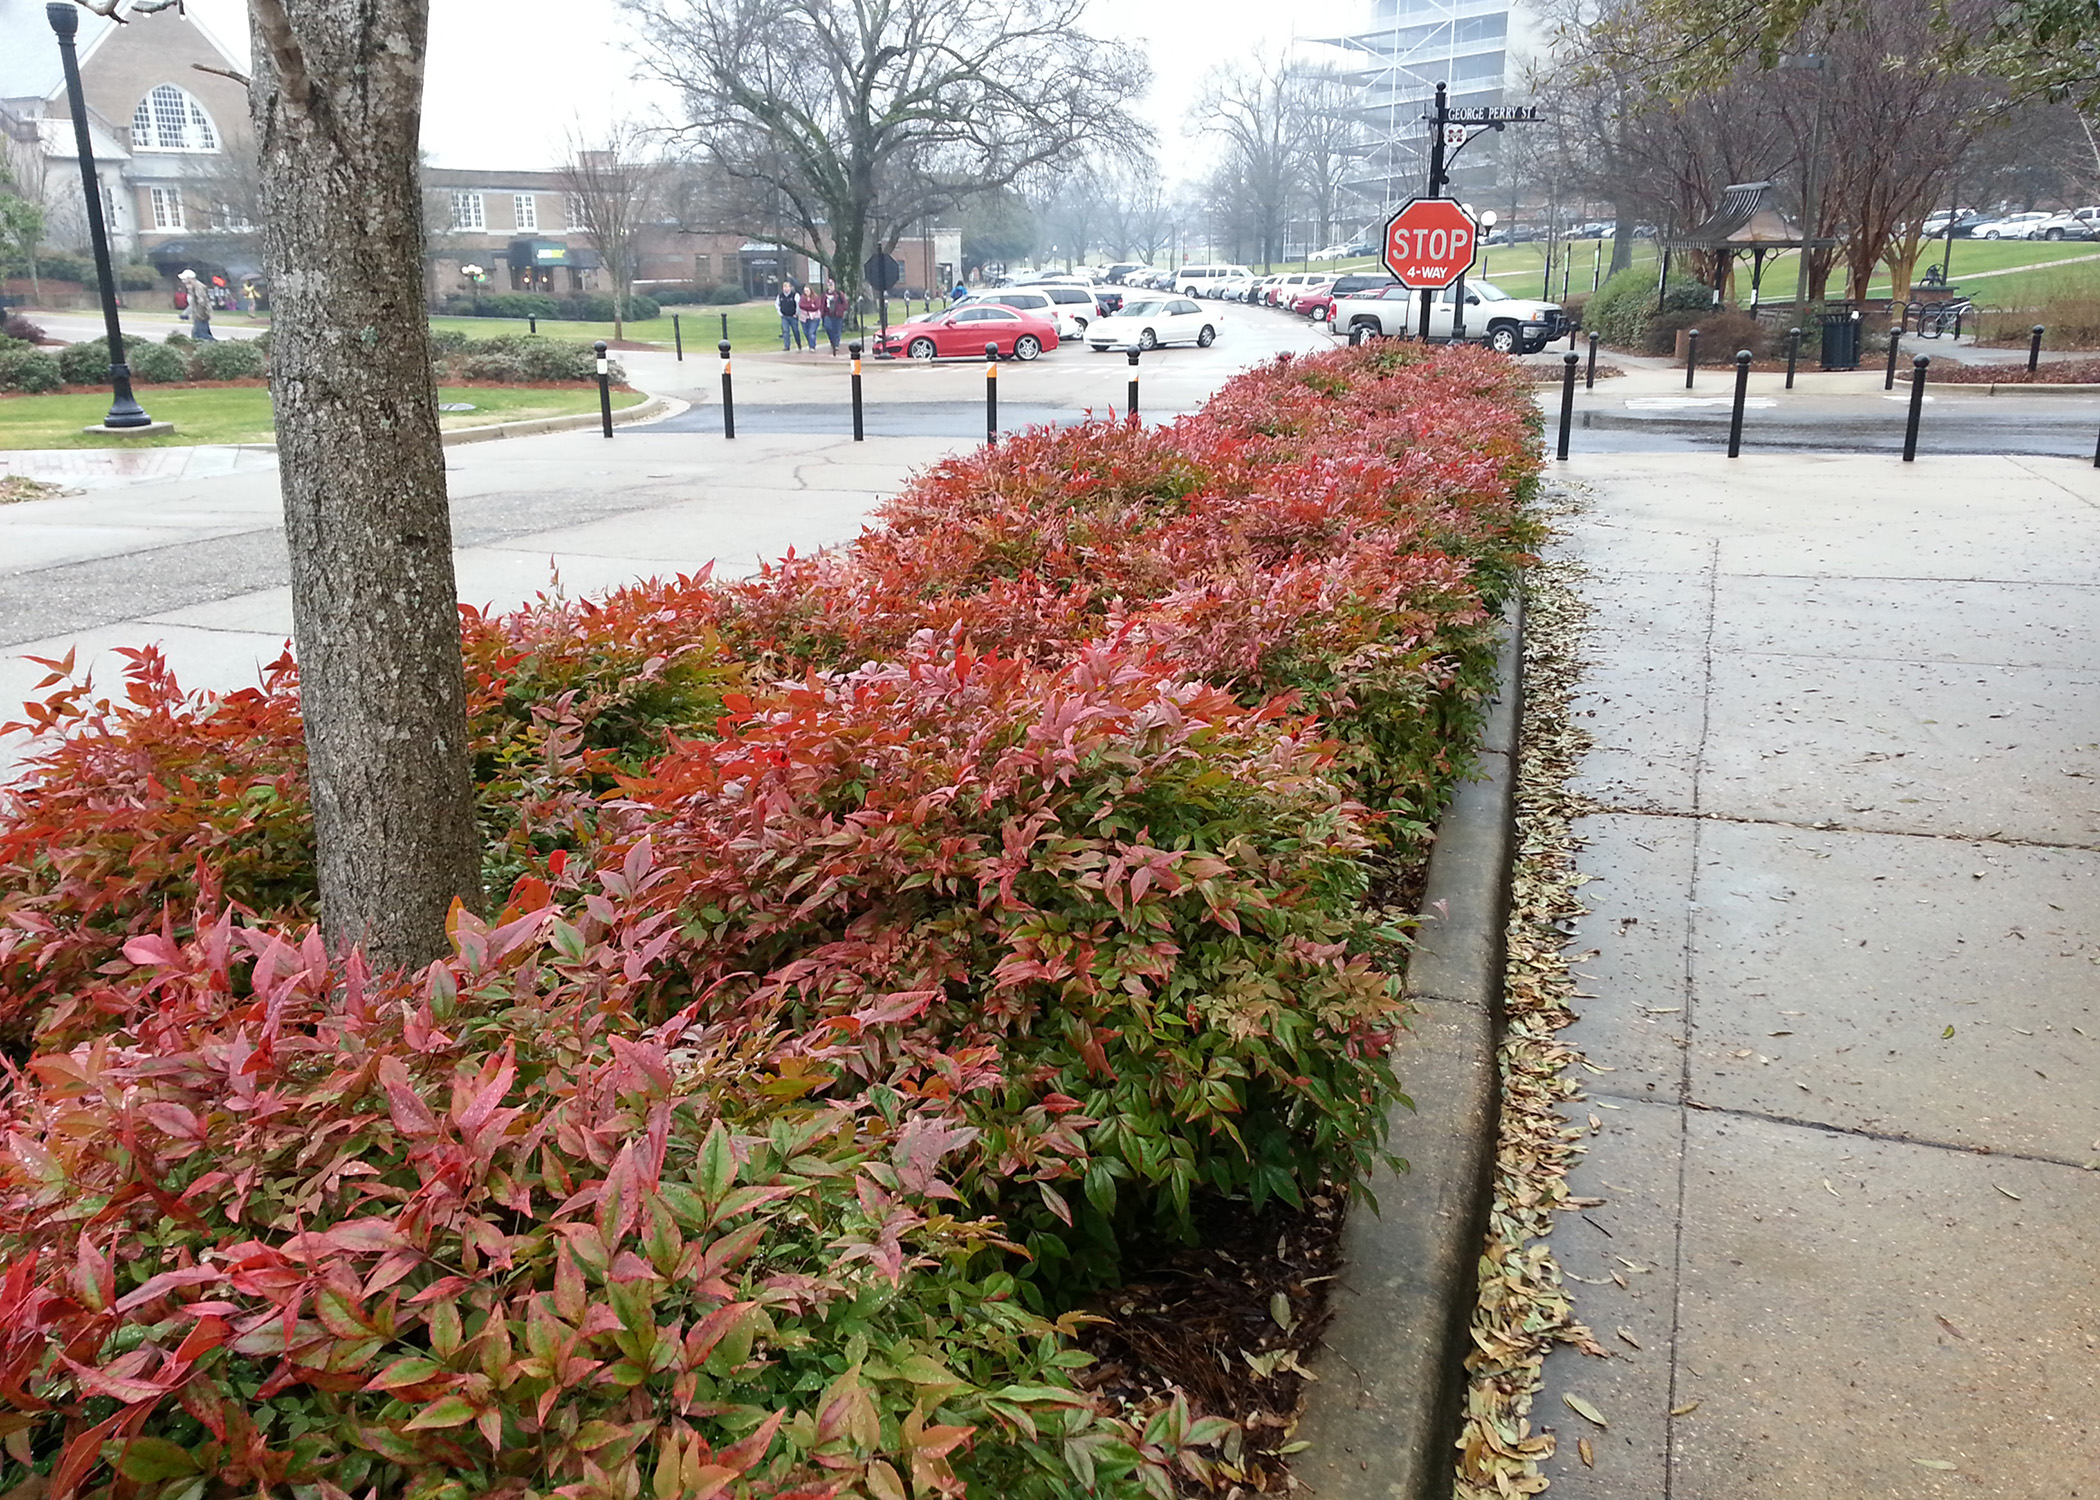 Nandina offers foliage color through winter mississippi state university extension service for Olive garden blue springs missouri